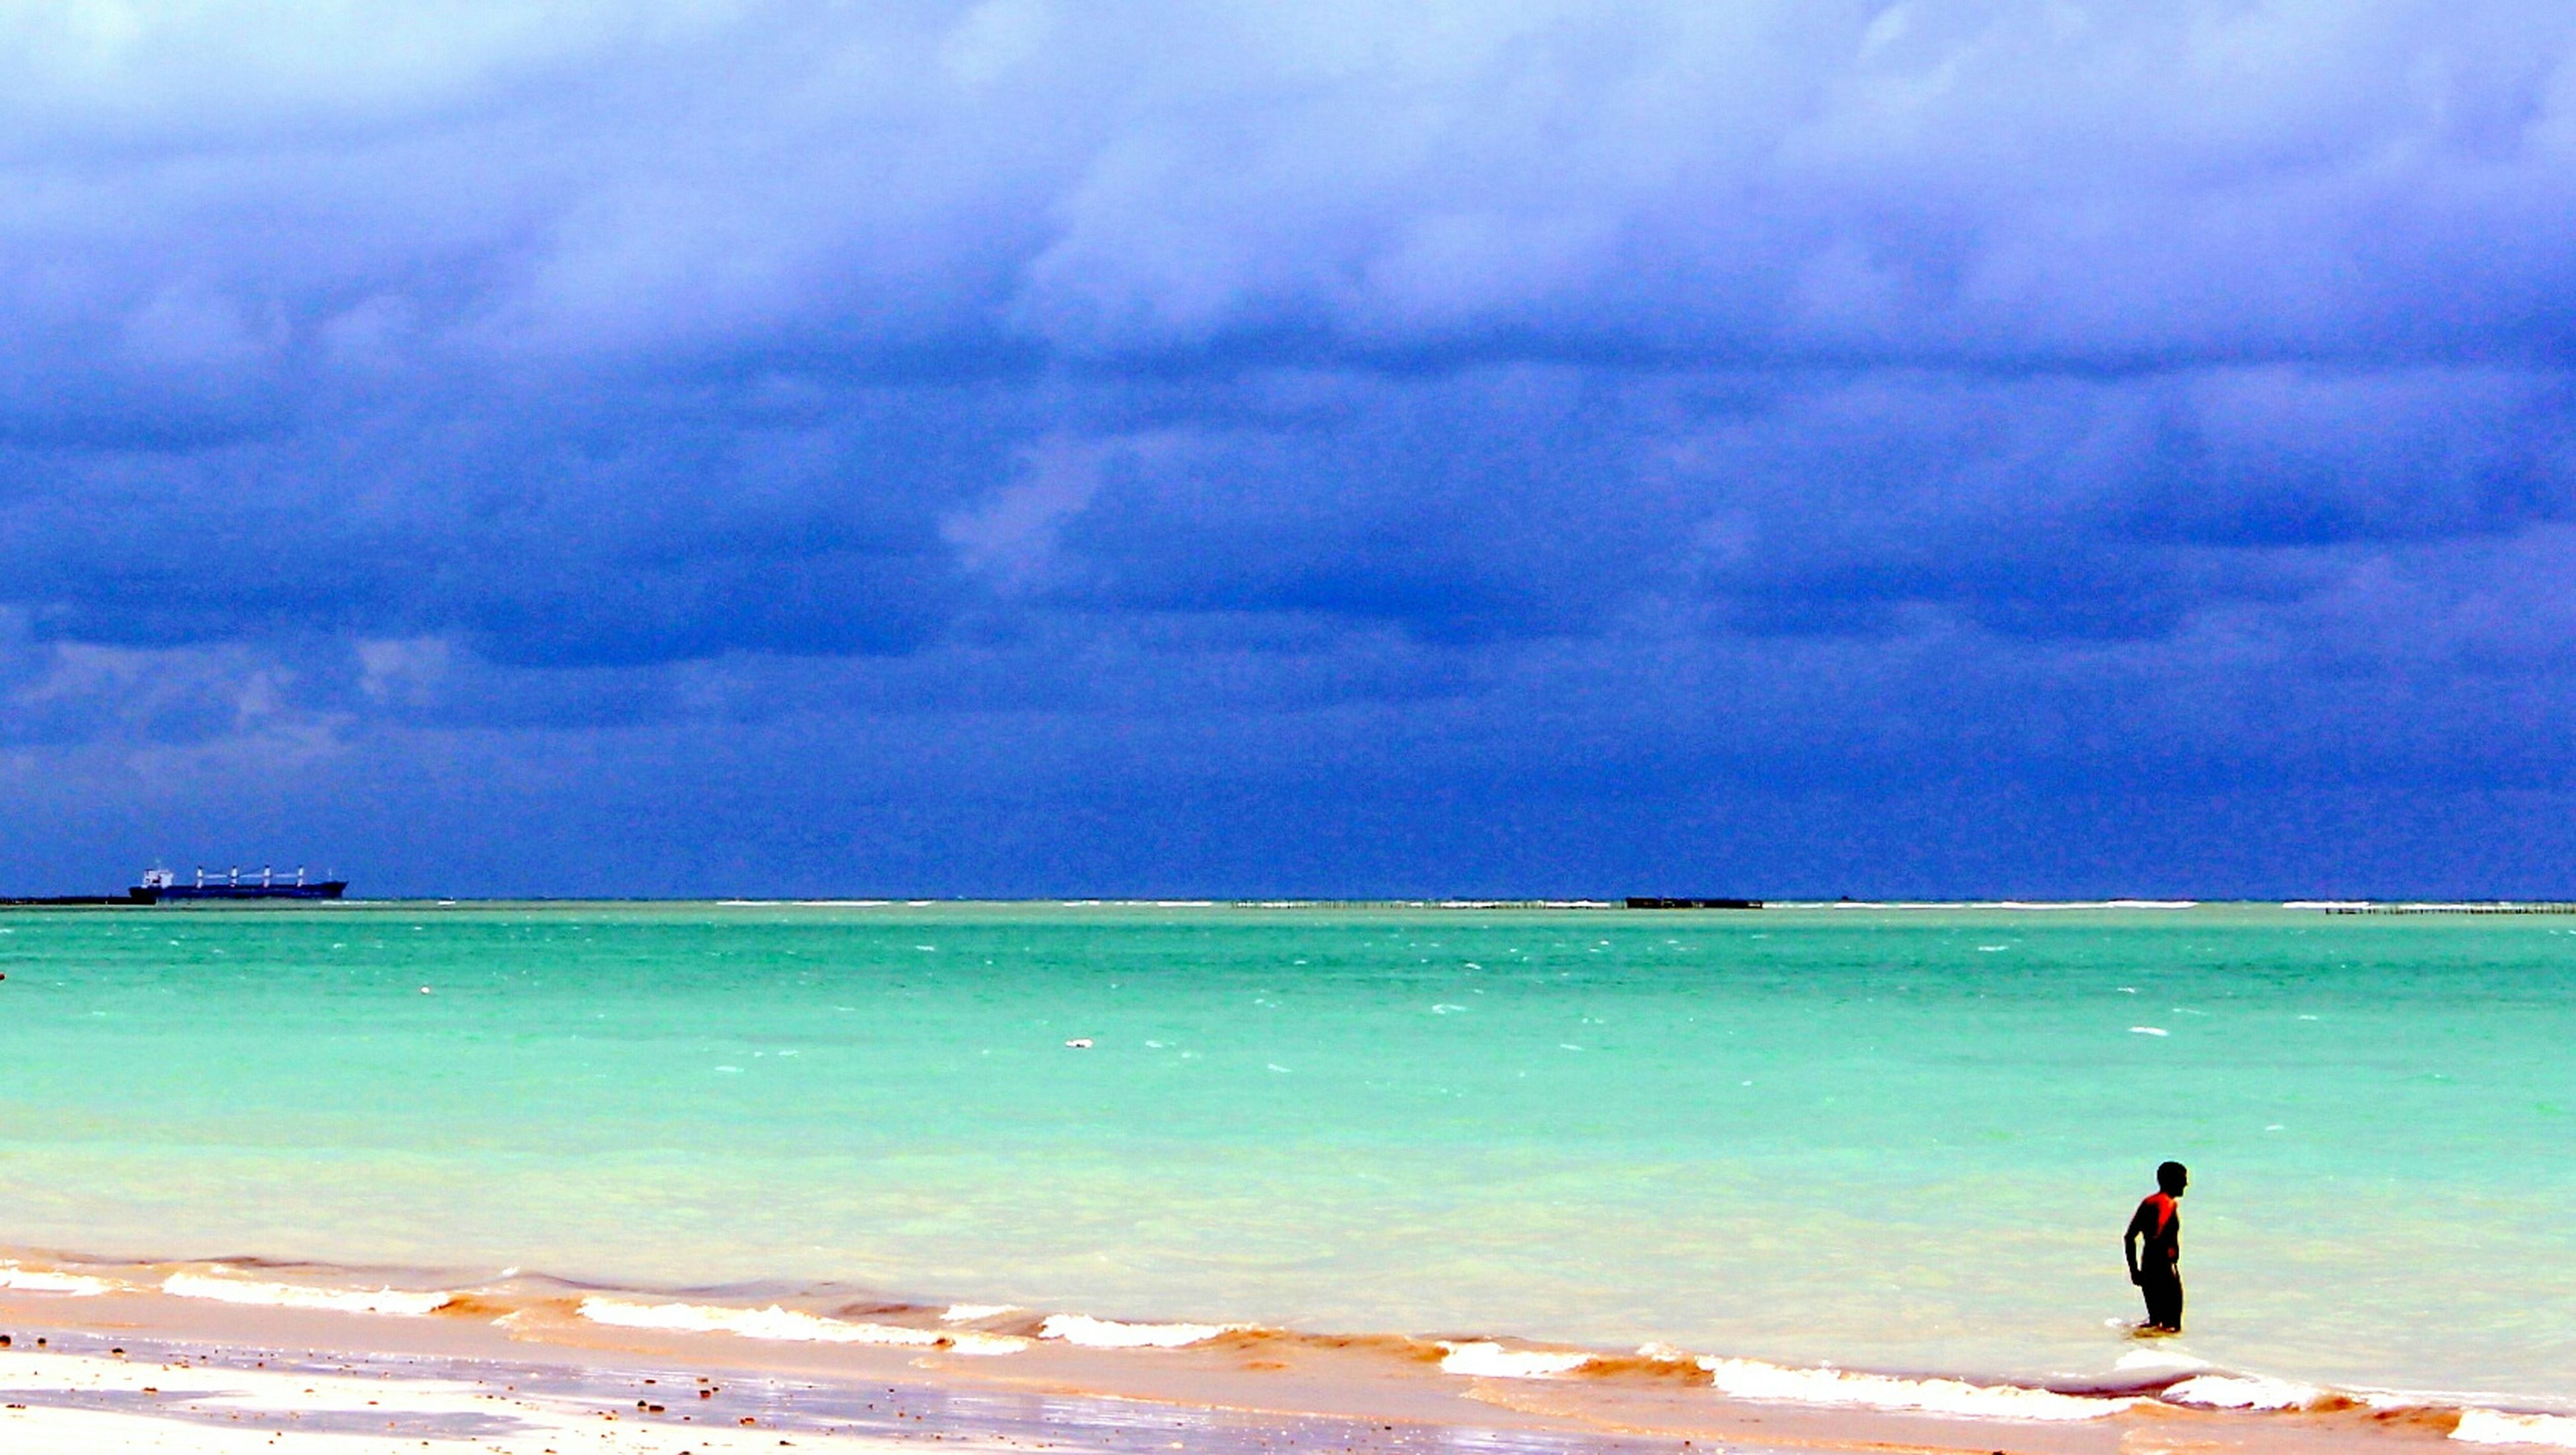 sea, water, sky, horizon over water, beach, cloud - sky, shore, cloudy, leisure activity, lifestyles, scenics, tranquility, beauty in nature, tranquil scene, cloud, nature, men, full length